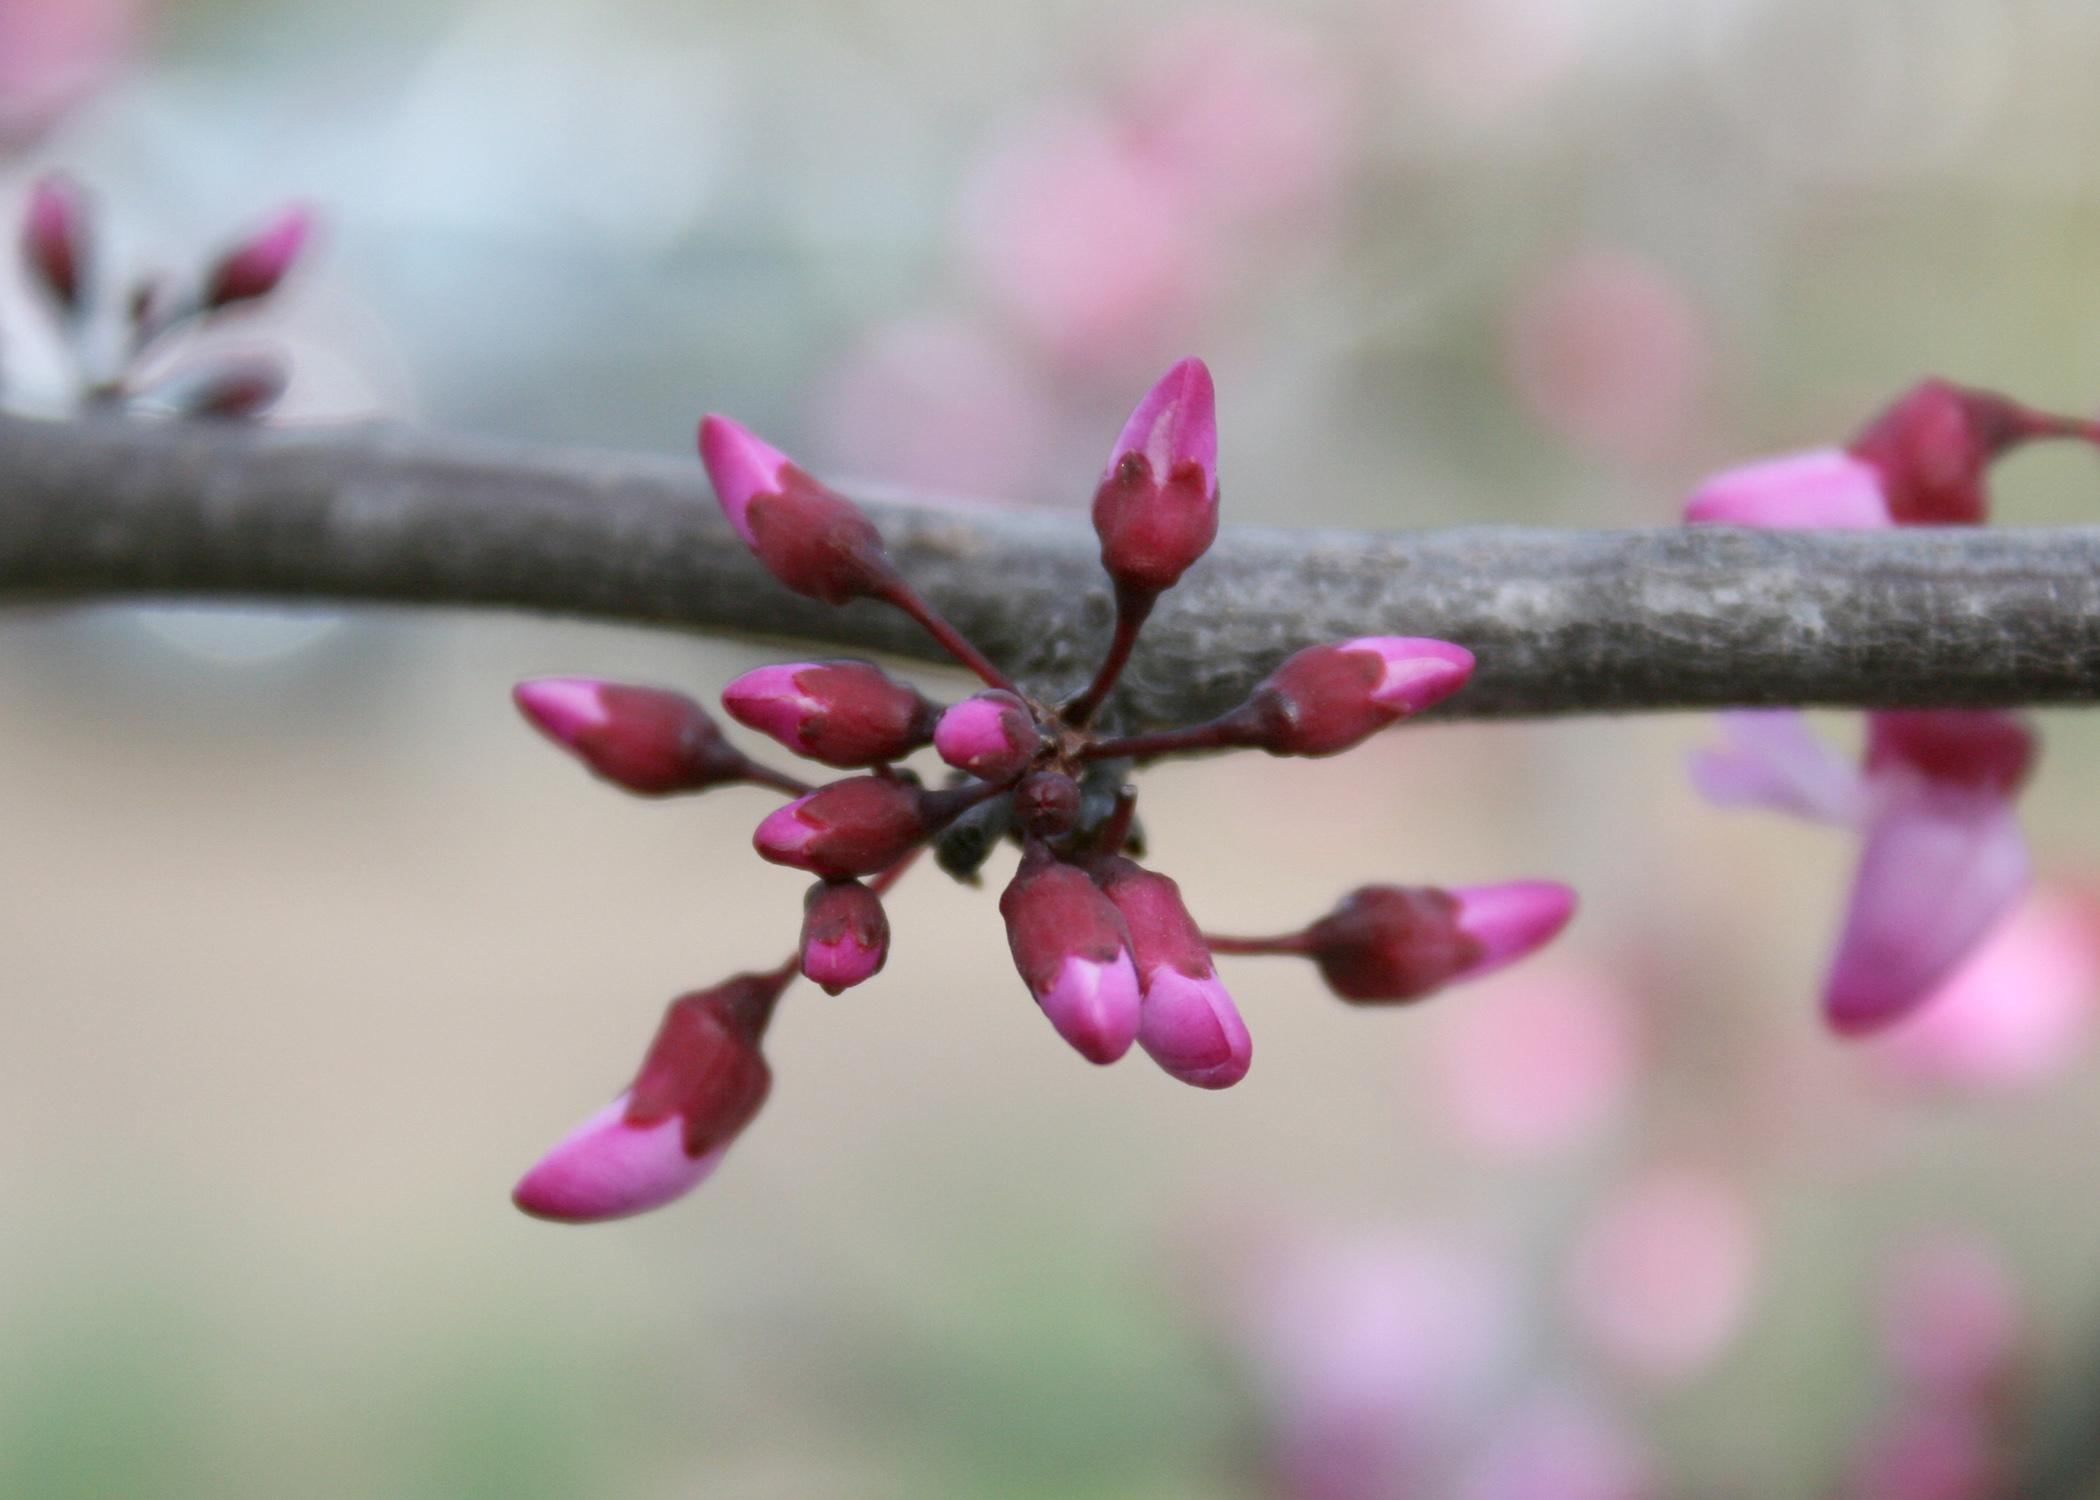 The purple flowers of the redbud tree are a seeming contradiction until you glimpse the deep, red color of the flower buds as they begin to open. (Photo by MSU Extension Service/Gary Bachman)